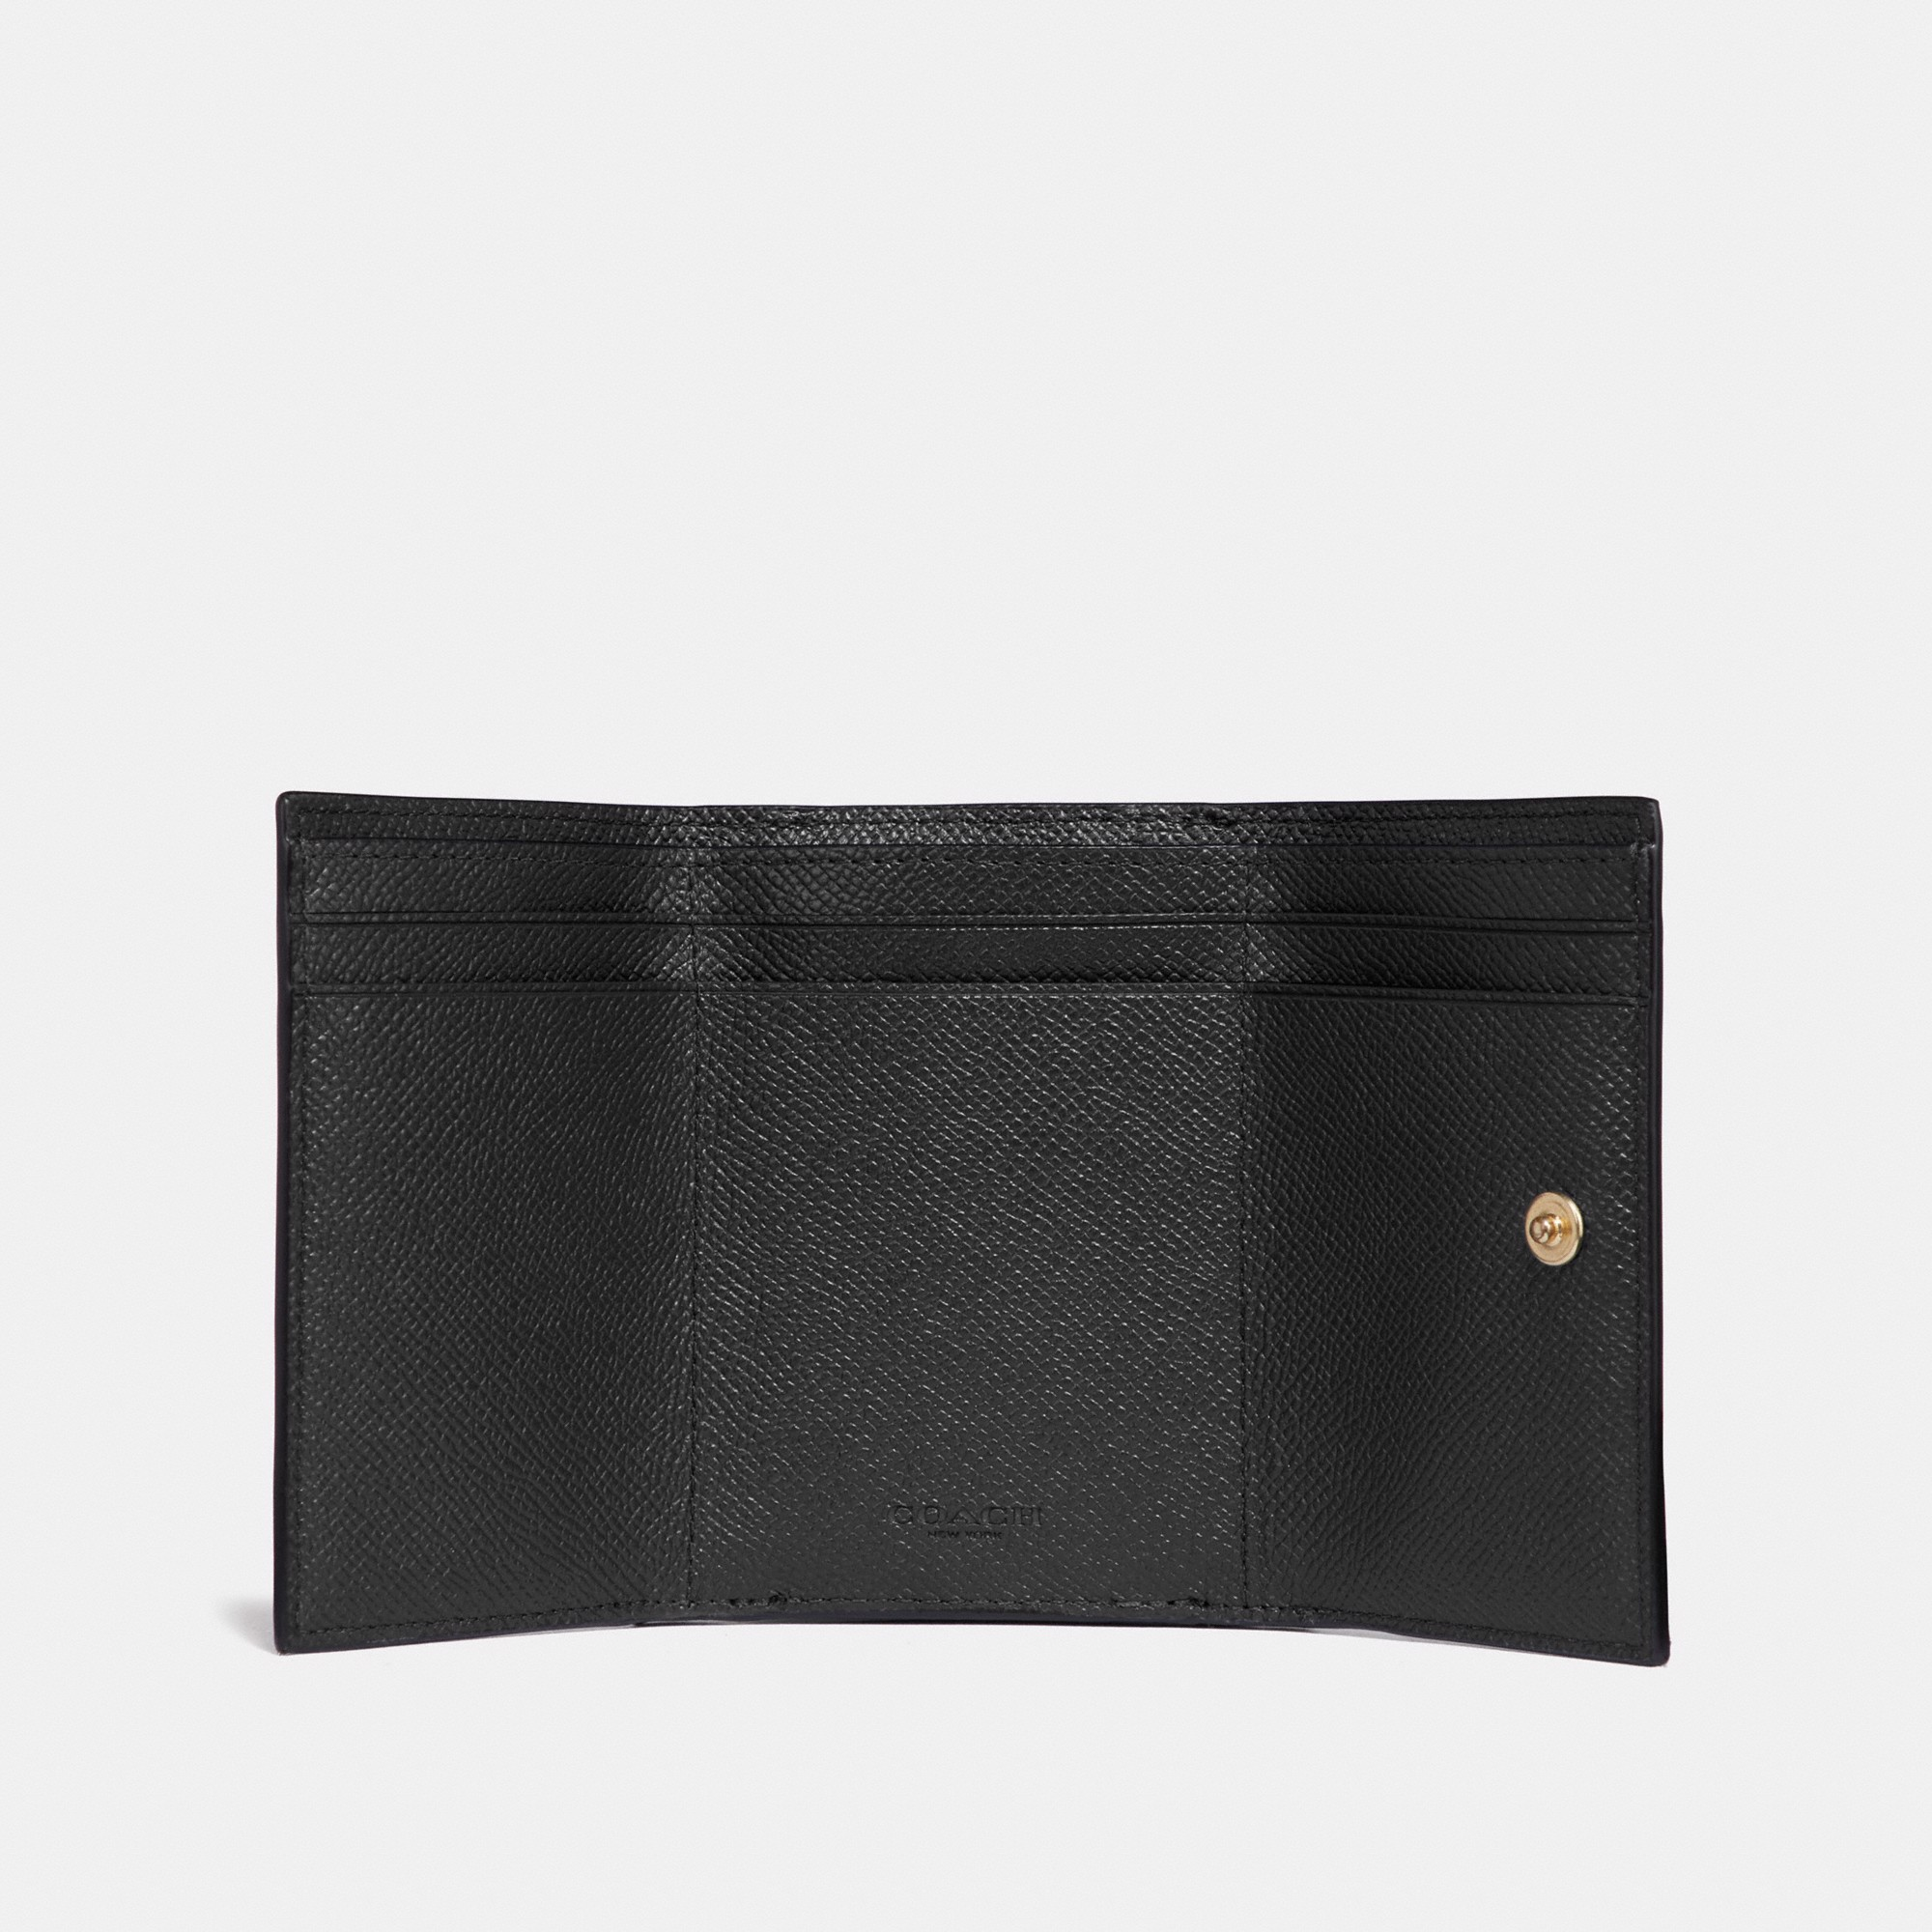 Coach Small Flap Wallet 'Black'